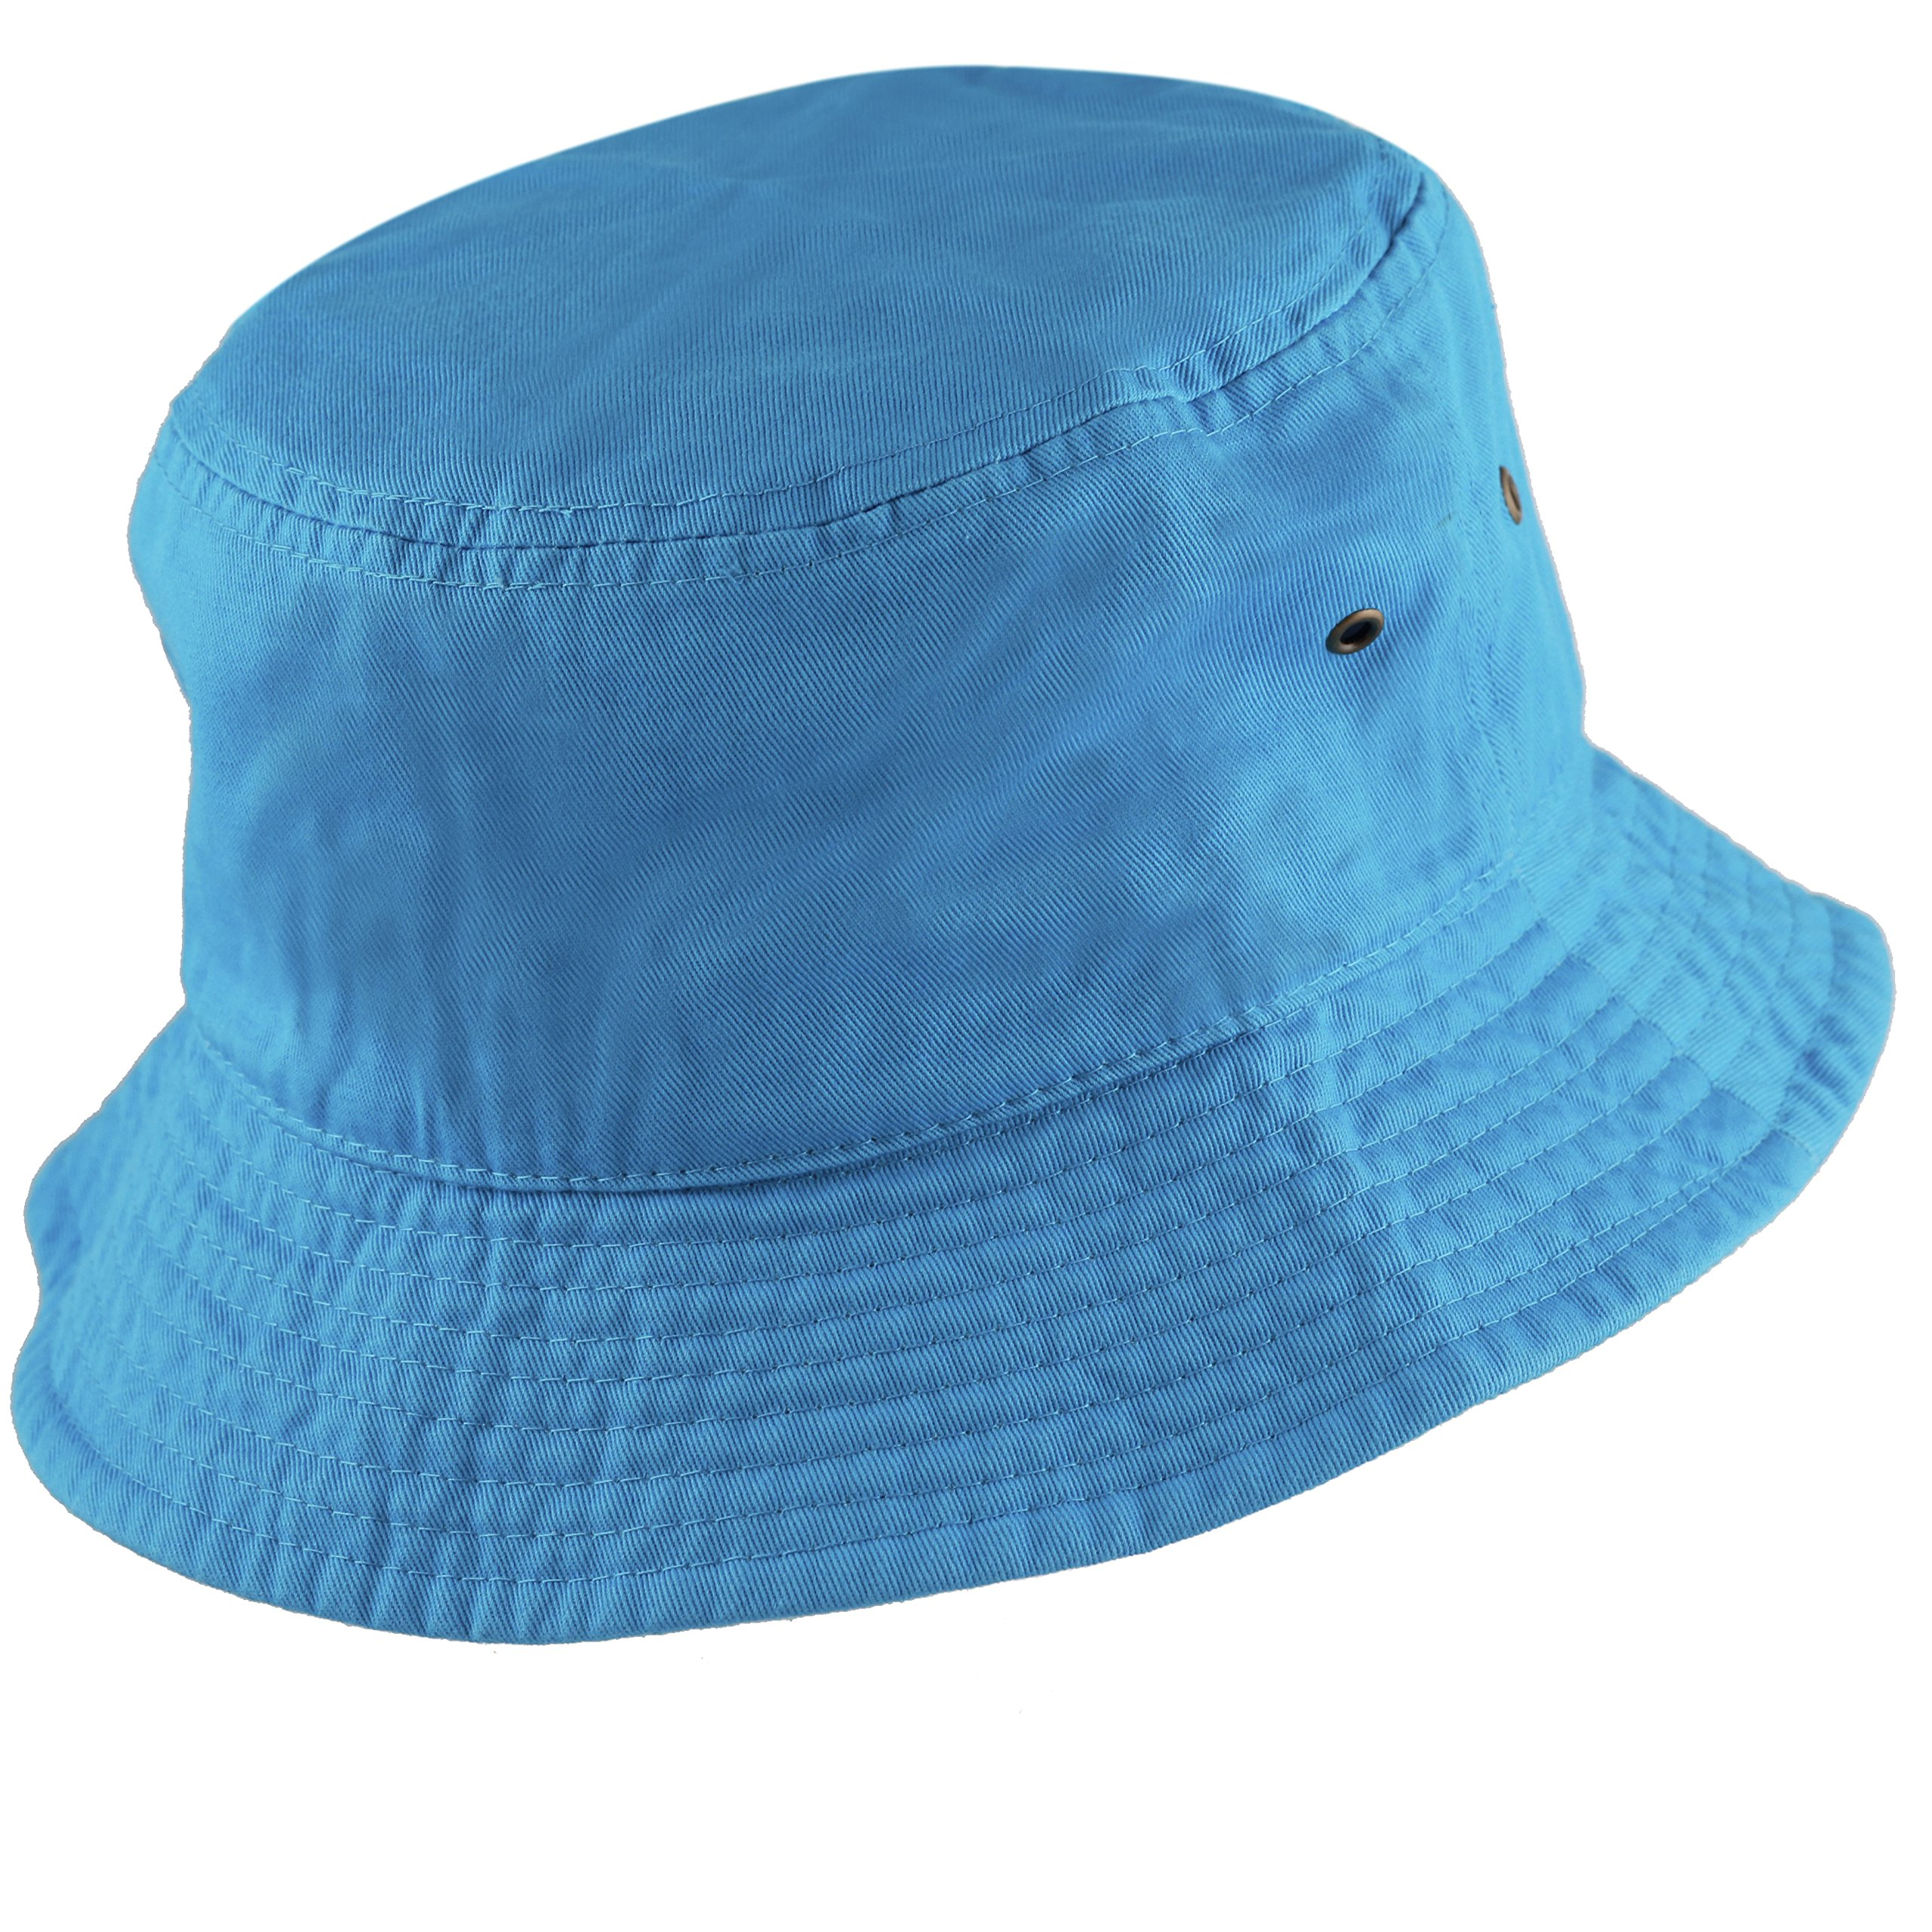 8df4ee9425a THE HAT DEPOT 300N Unisex 100% Cotton Packable Summer Travel Bucket Hat  (S M